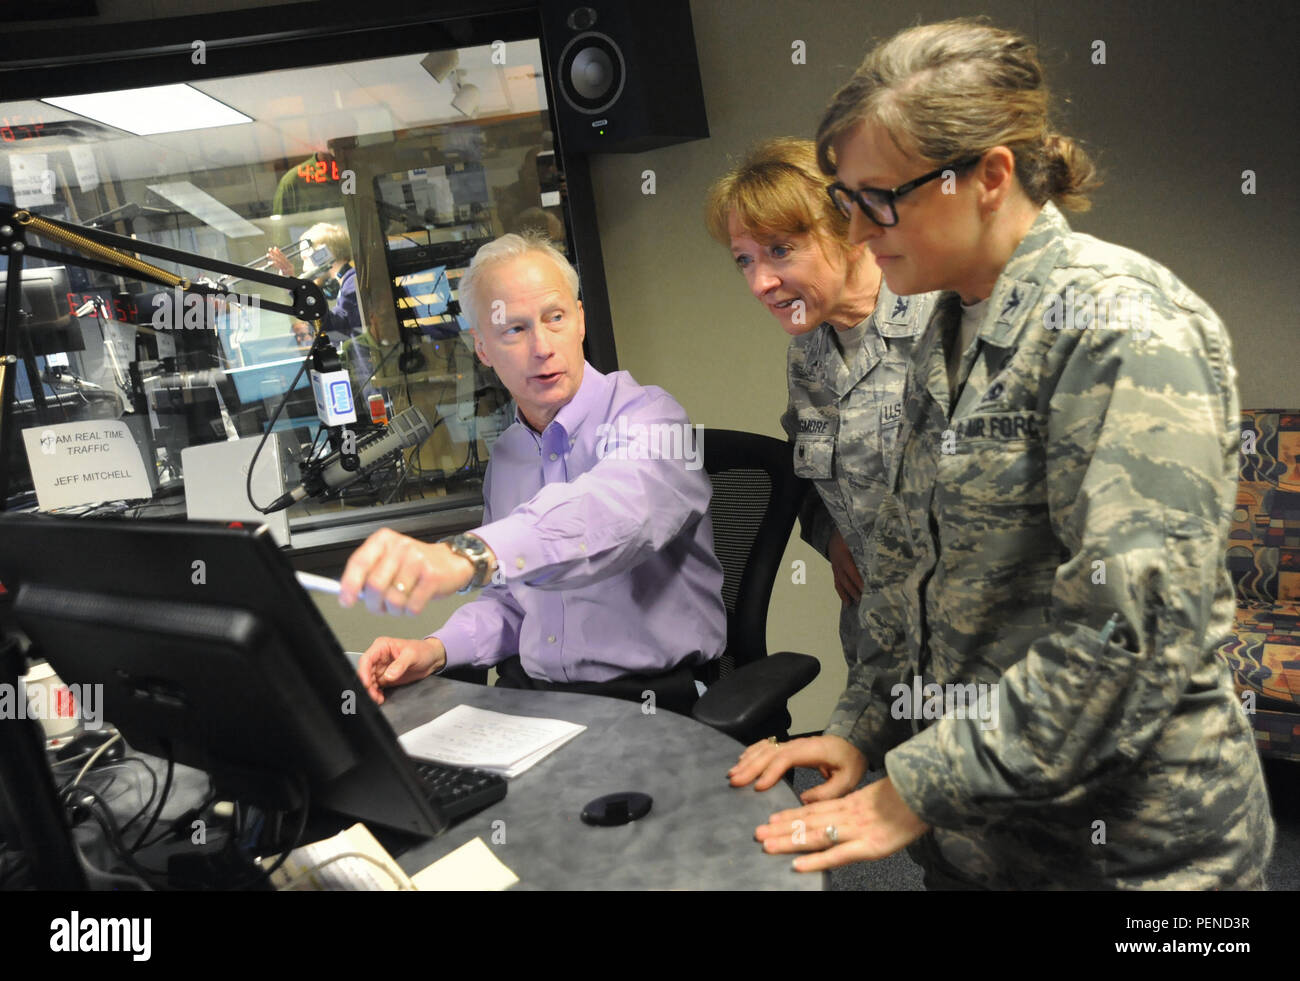 Oregon Air National Guard Cols. Donna Prigmore, left, and Jenifer Pardy, right, participate in an on-air discussion during the Mark and Dave Radio Program, KPAM 860 radio, as part of Operation Santa Claus, an annual fundraiser, which assists local families coping with income loss due to military deployment, Dec. 4, 2015, in Clackamas, Ore. (U.S. Air Force photo by Tech. Sgt. John Hughel, 142nd Fighter Wing Public Affairs) - Stock Image